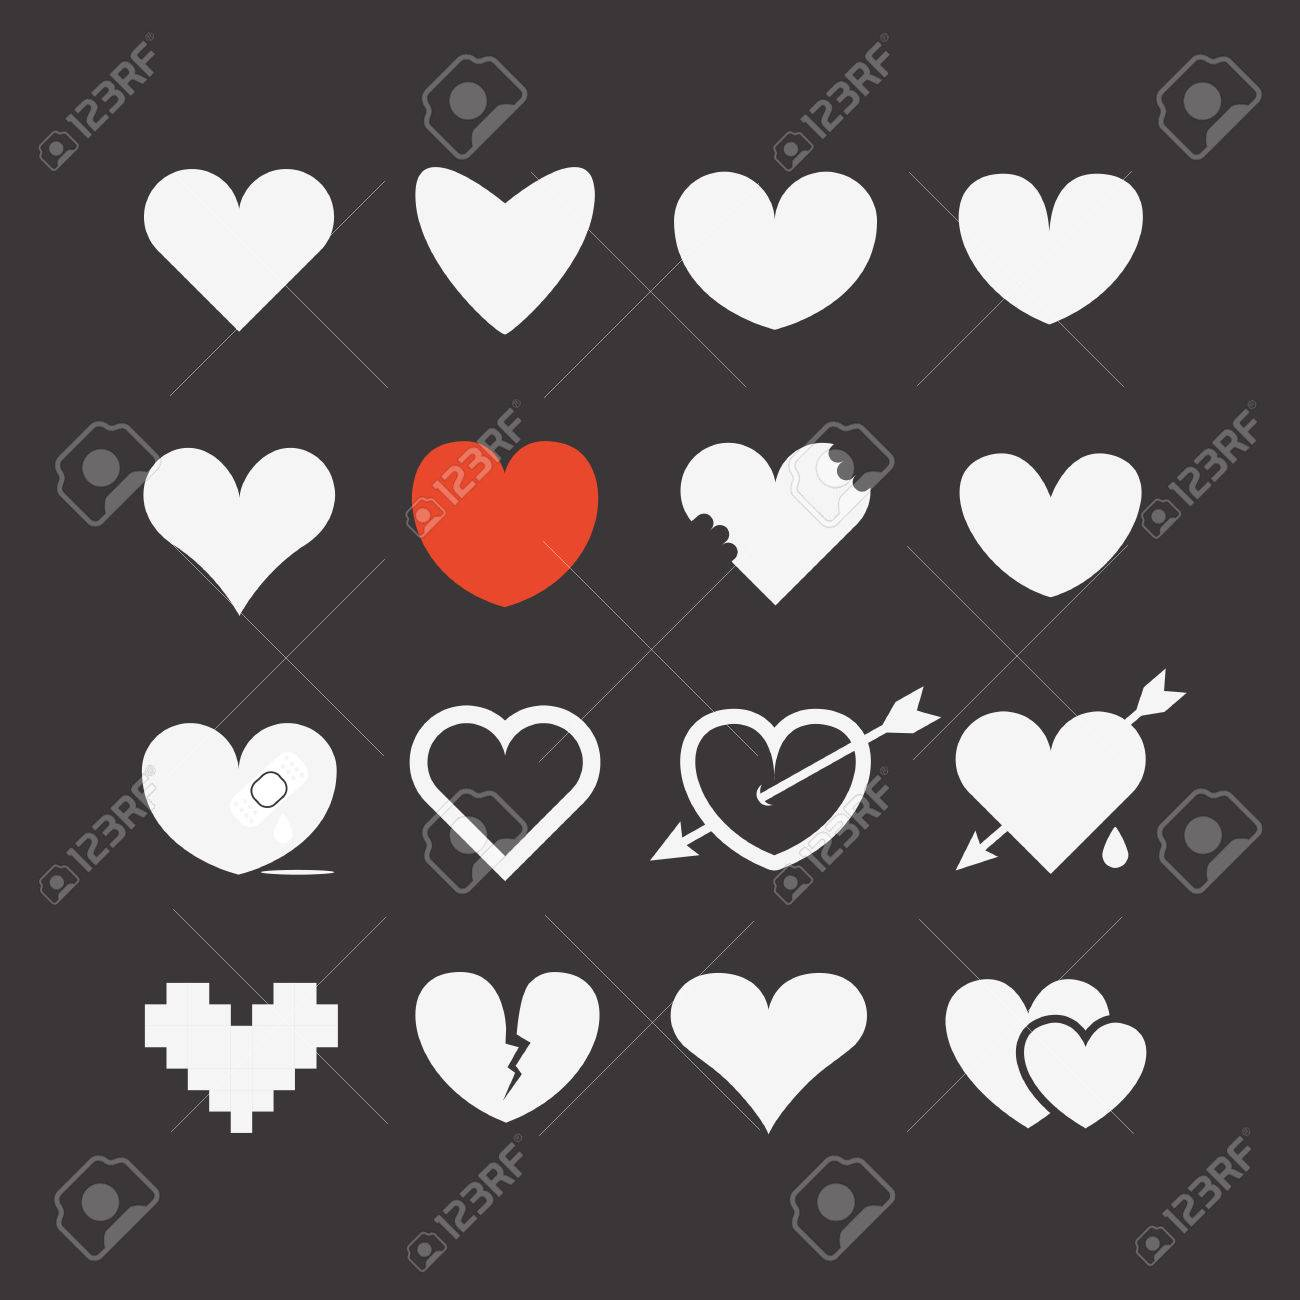 Different abstract heart icons collection - 23203616